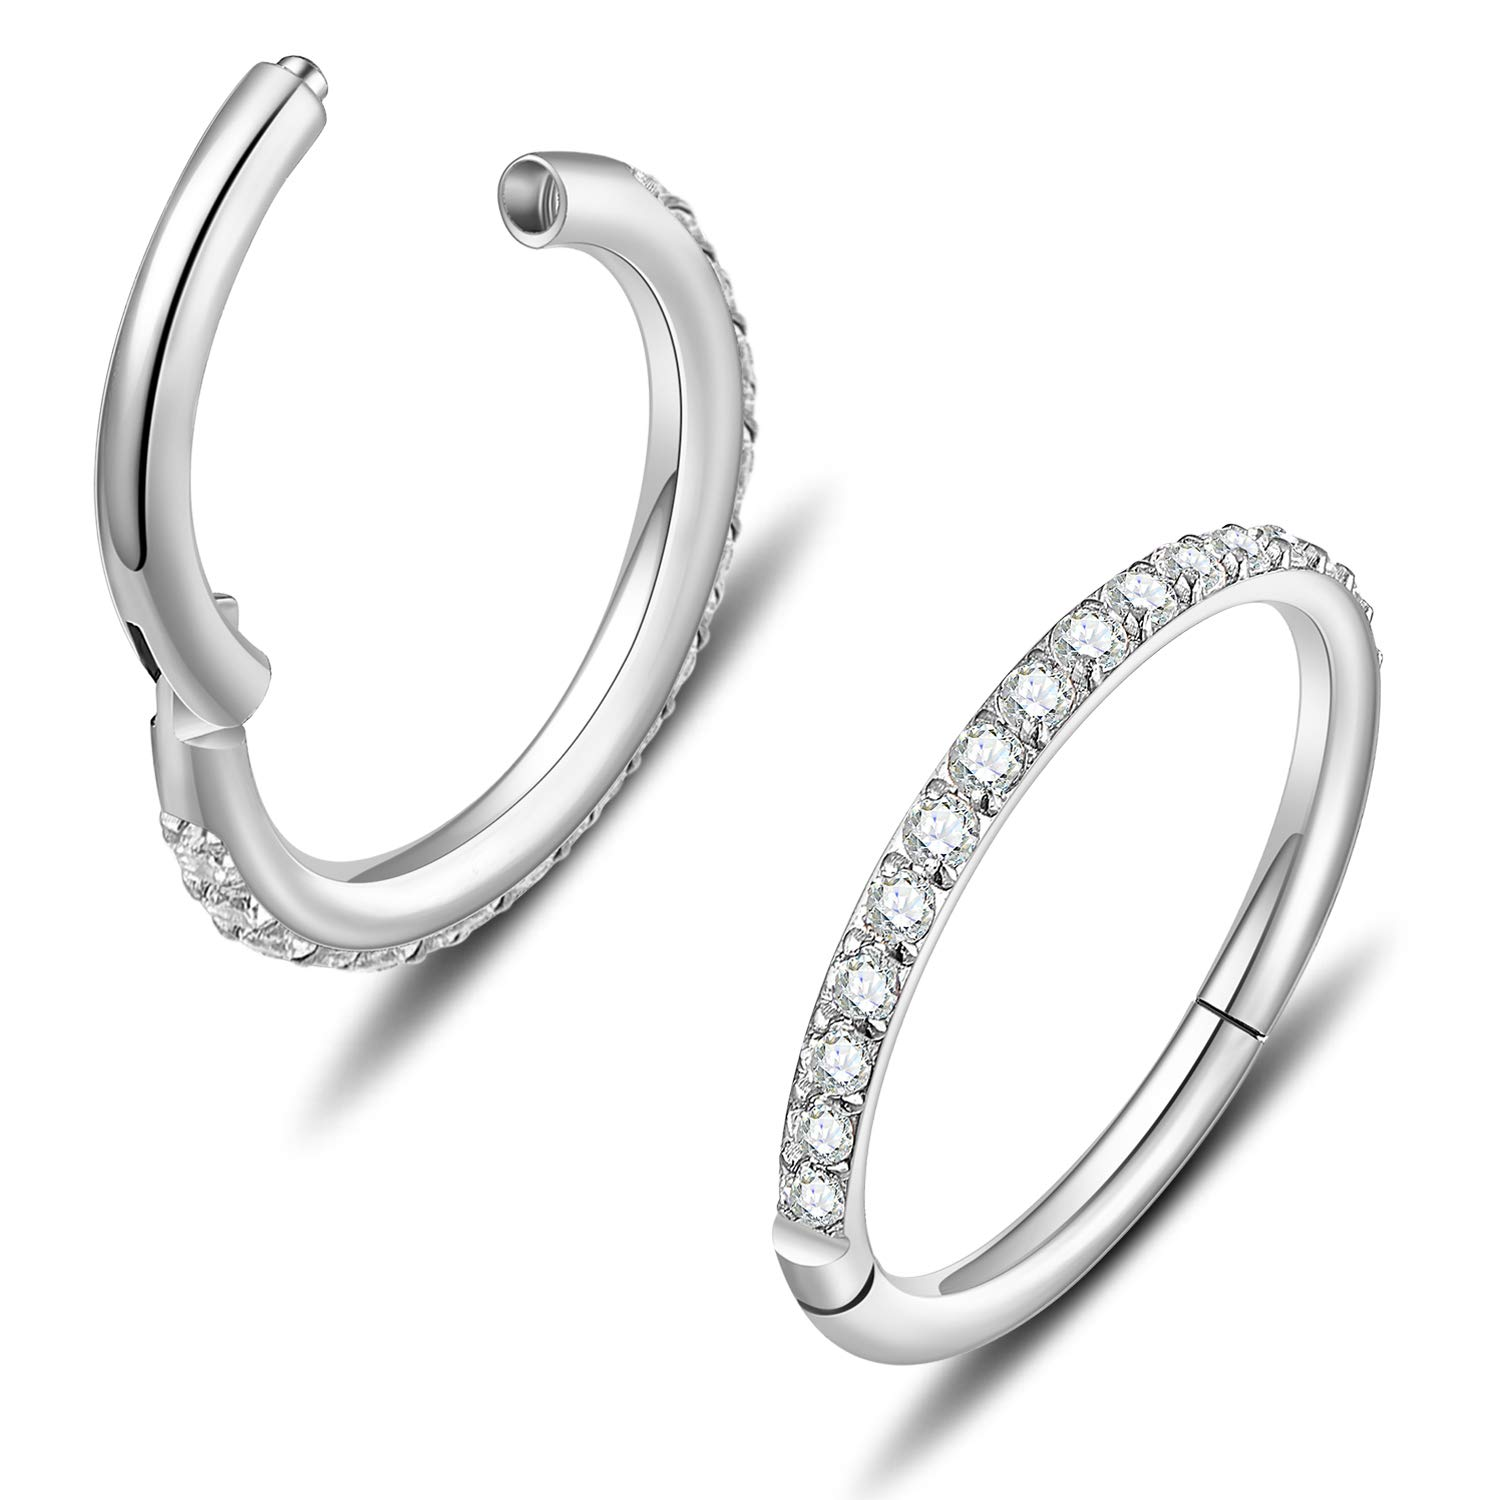 316L Surgical Steel 18G 16G CZ Cartilage Earring Hoop Septum Nose Rings Daith Helix Tragus Piercing Jewelry